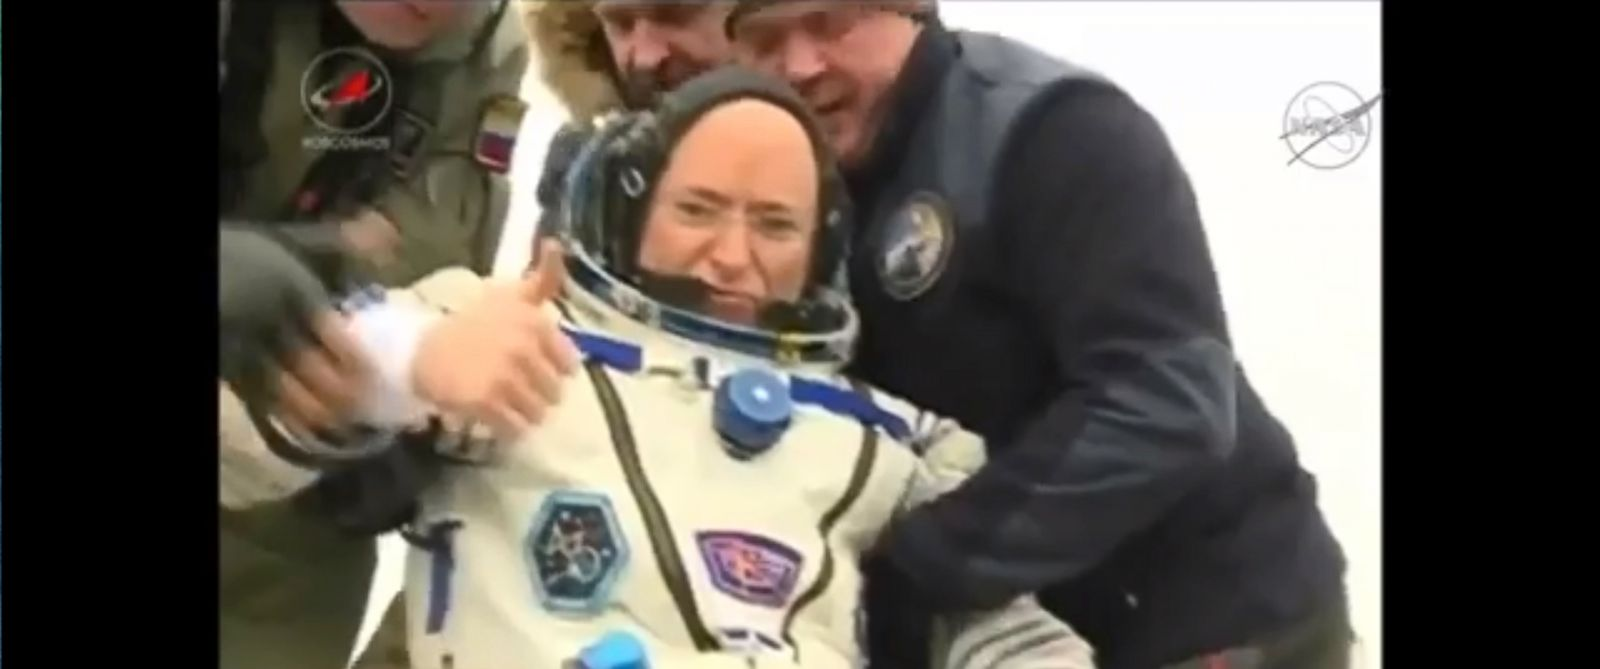 PHOTO: Astronaut Scott Kelly gives a thumbs up after returning to earth, March 1. 2015.